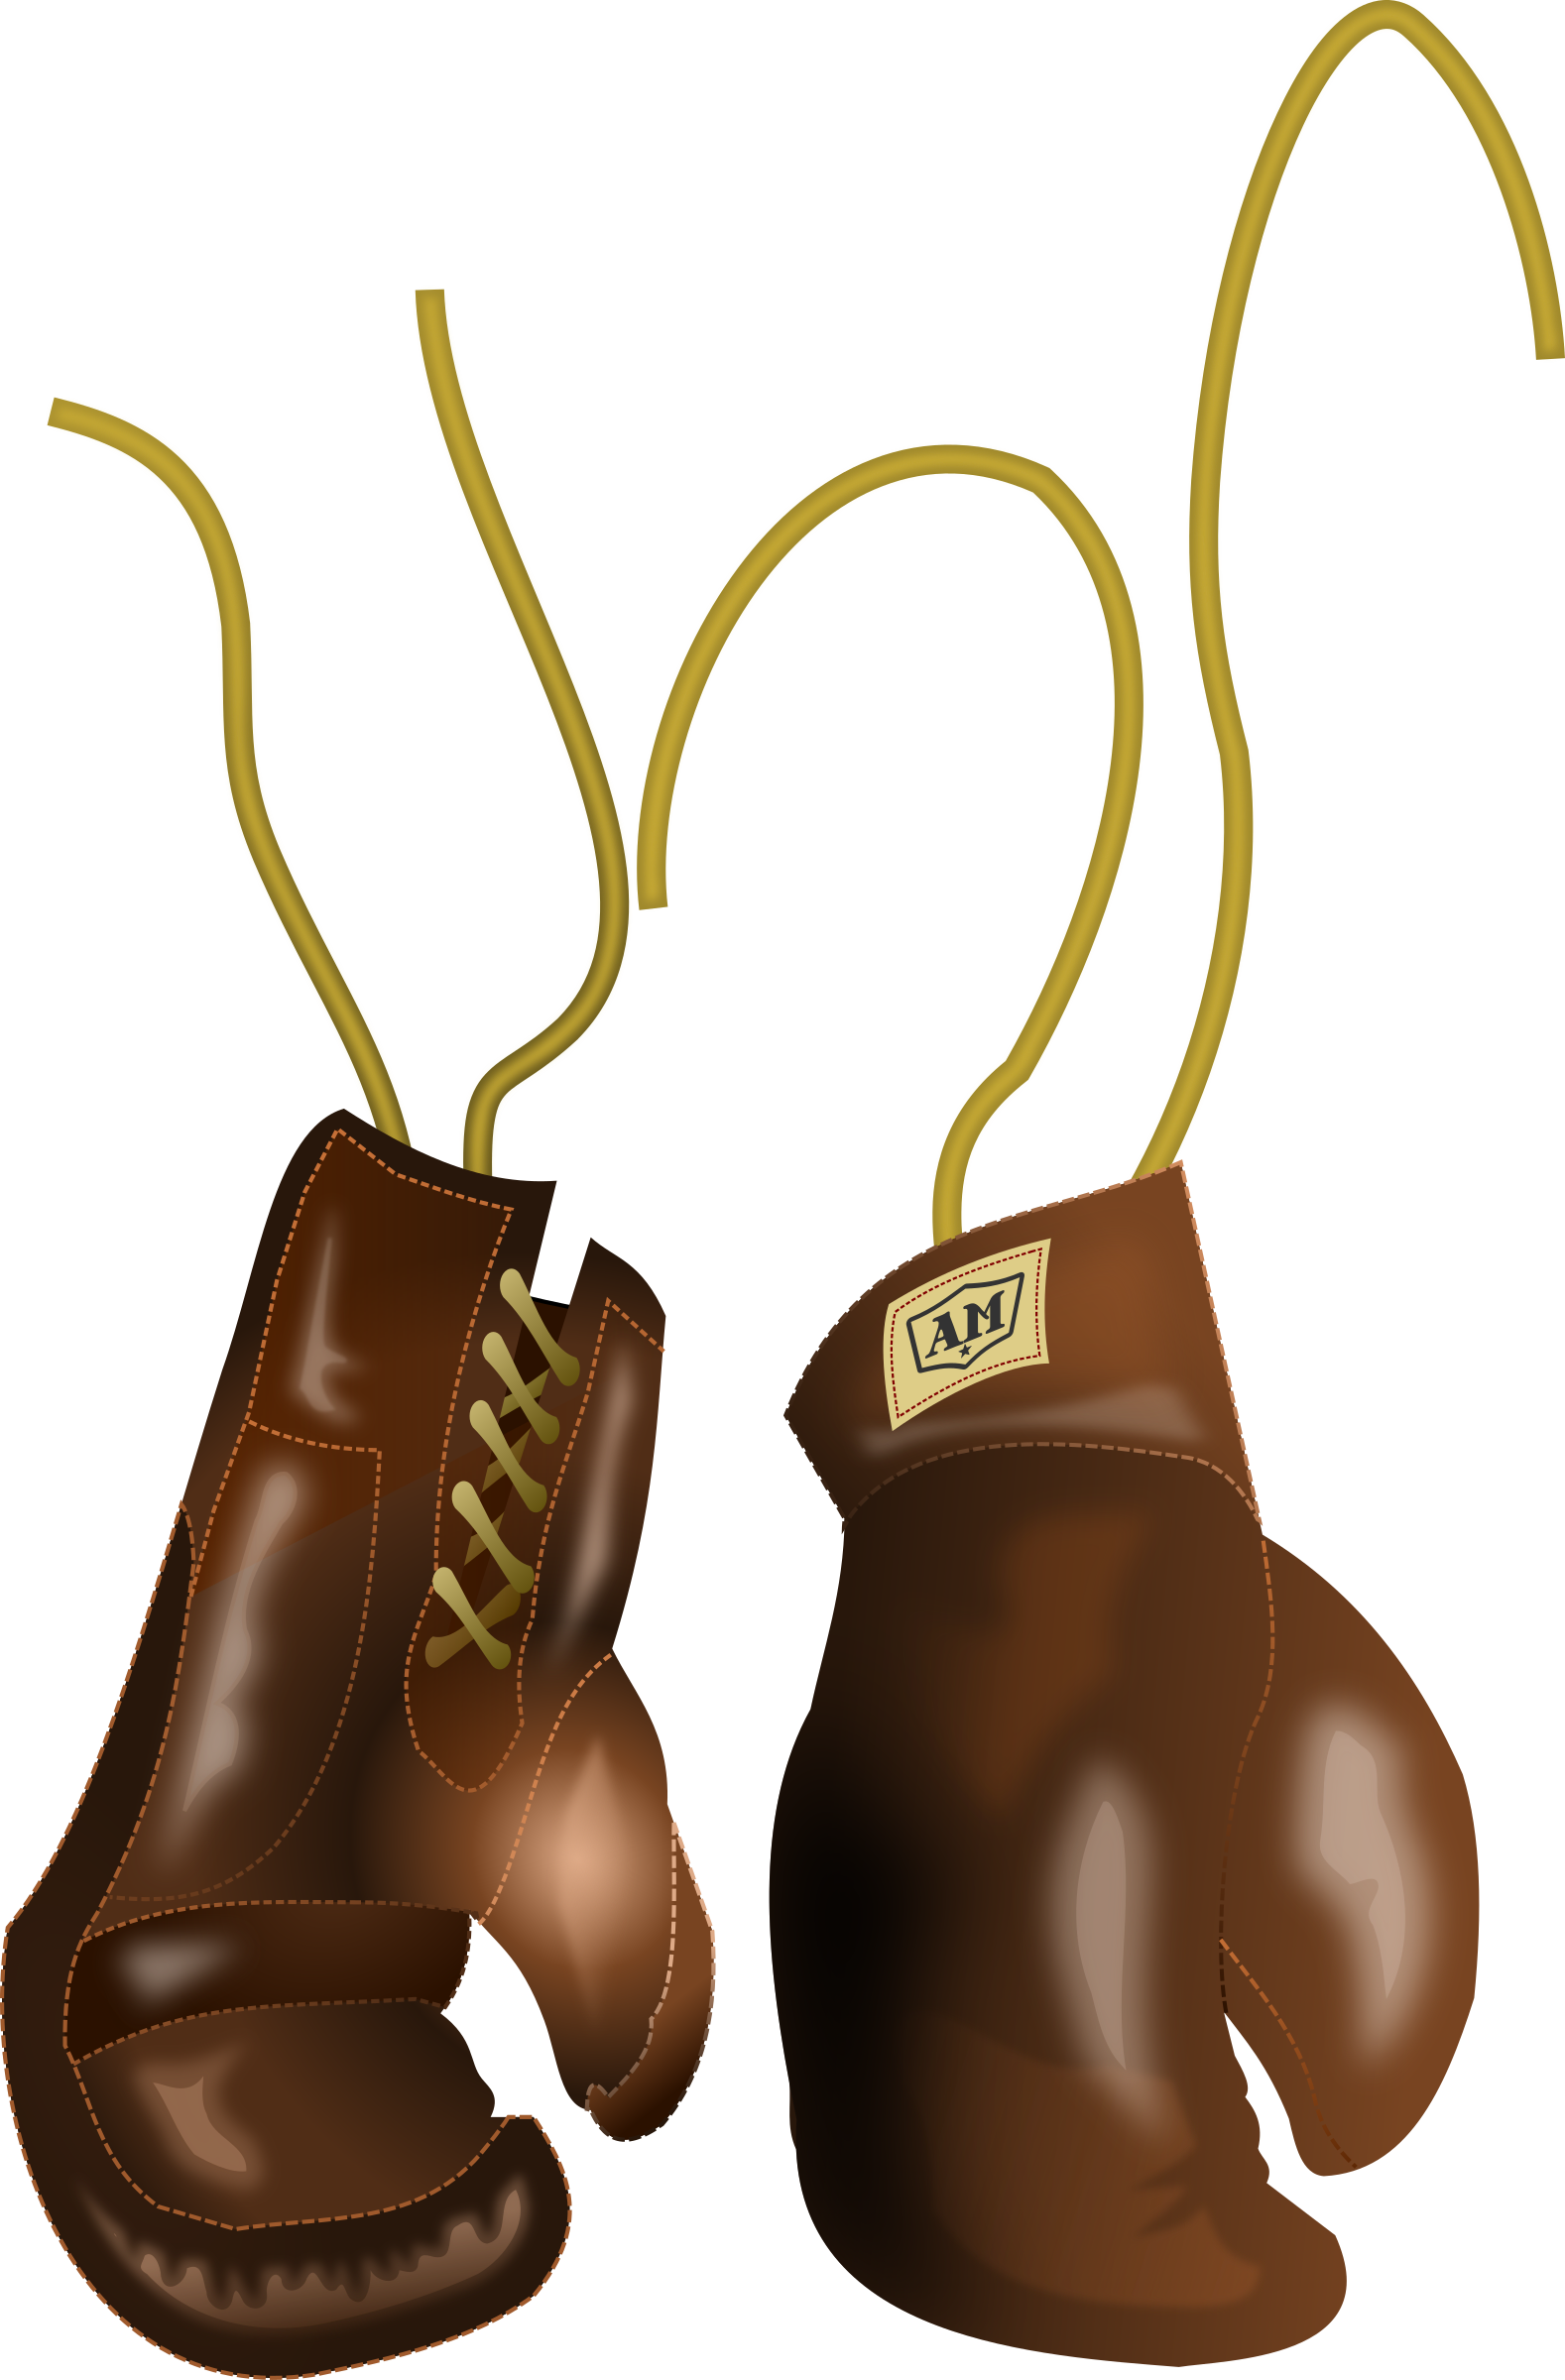 Retro clipart boxing. Vintage leather gloves by